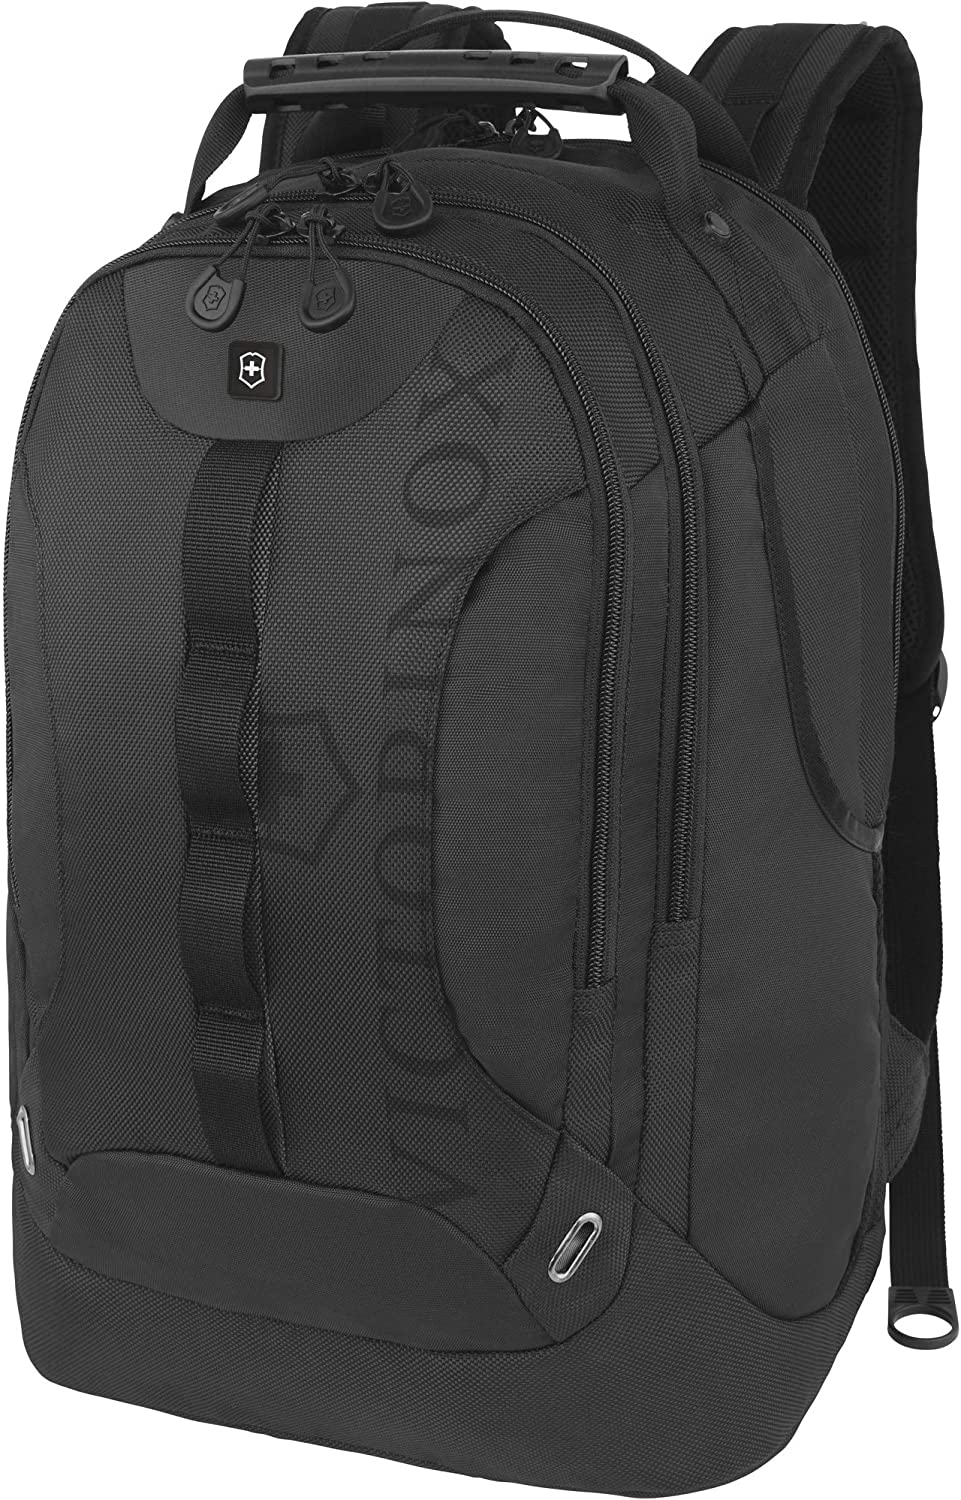 Victorinox VX Sport Trooper Laptop Backpack, Black, 19-inch